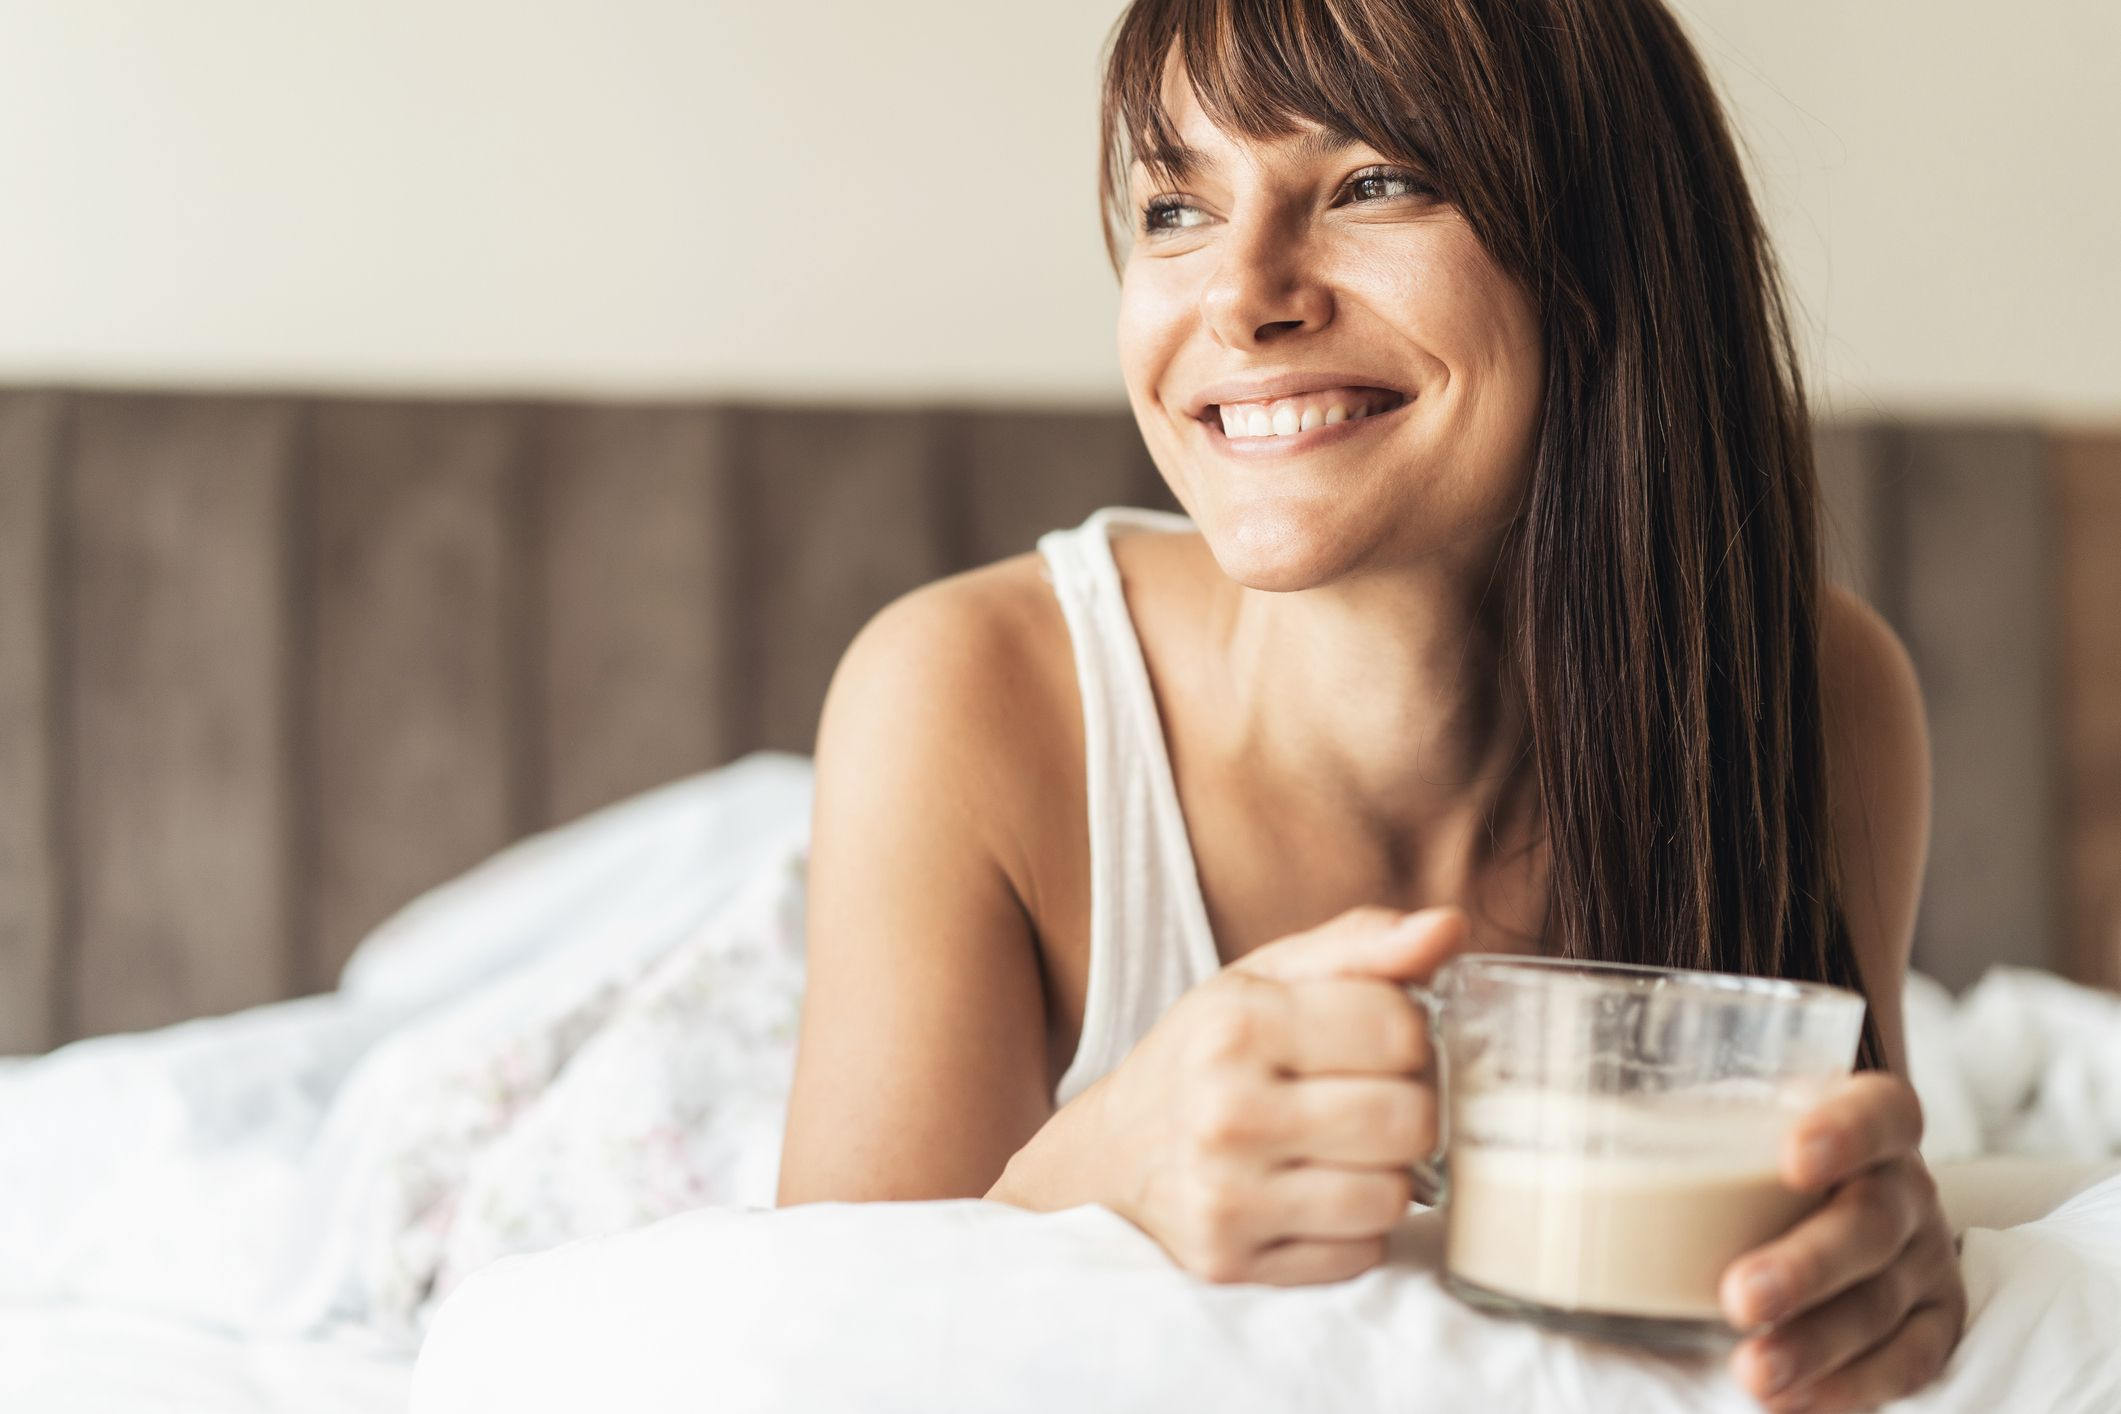 How to overcome morning anxiety